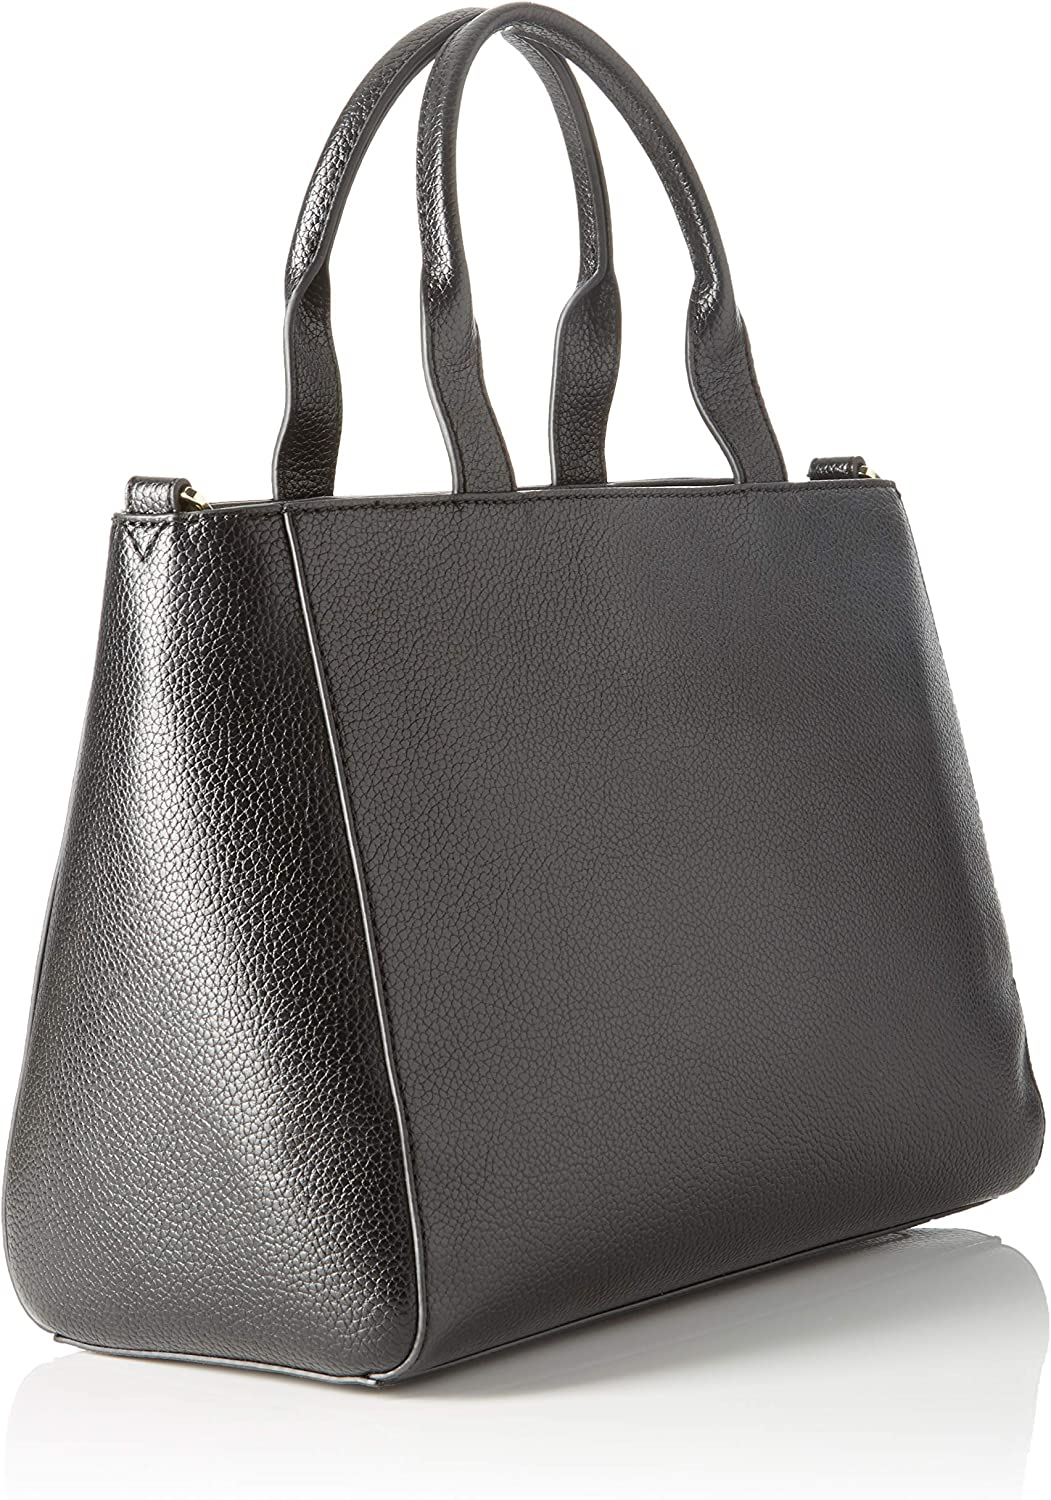 Trussardi Jeans Faith Shopper MD Tumbled Ecole, Sac à Main Femme, 23.5x15x32 centimeters (W x H x L) Noir (Black)